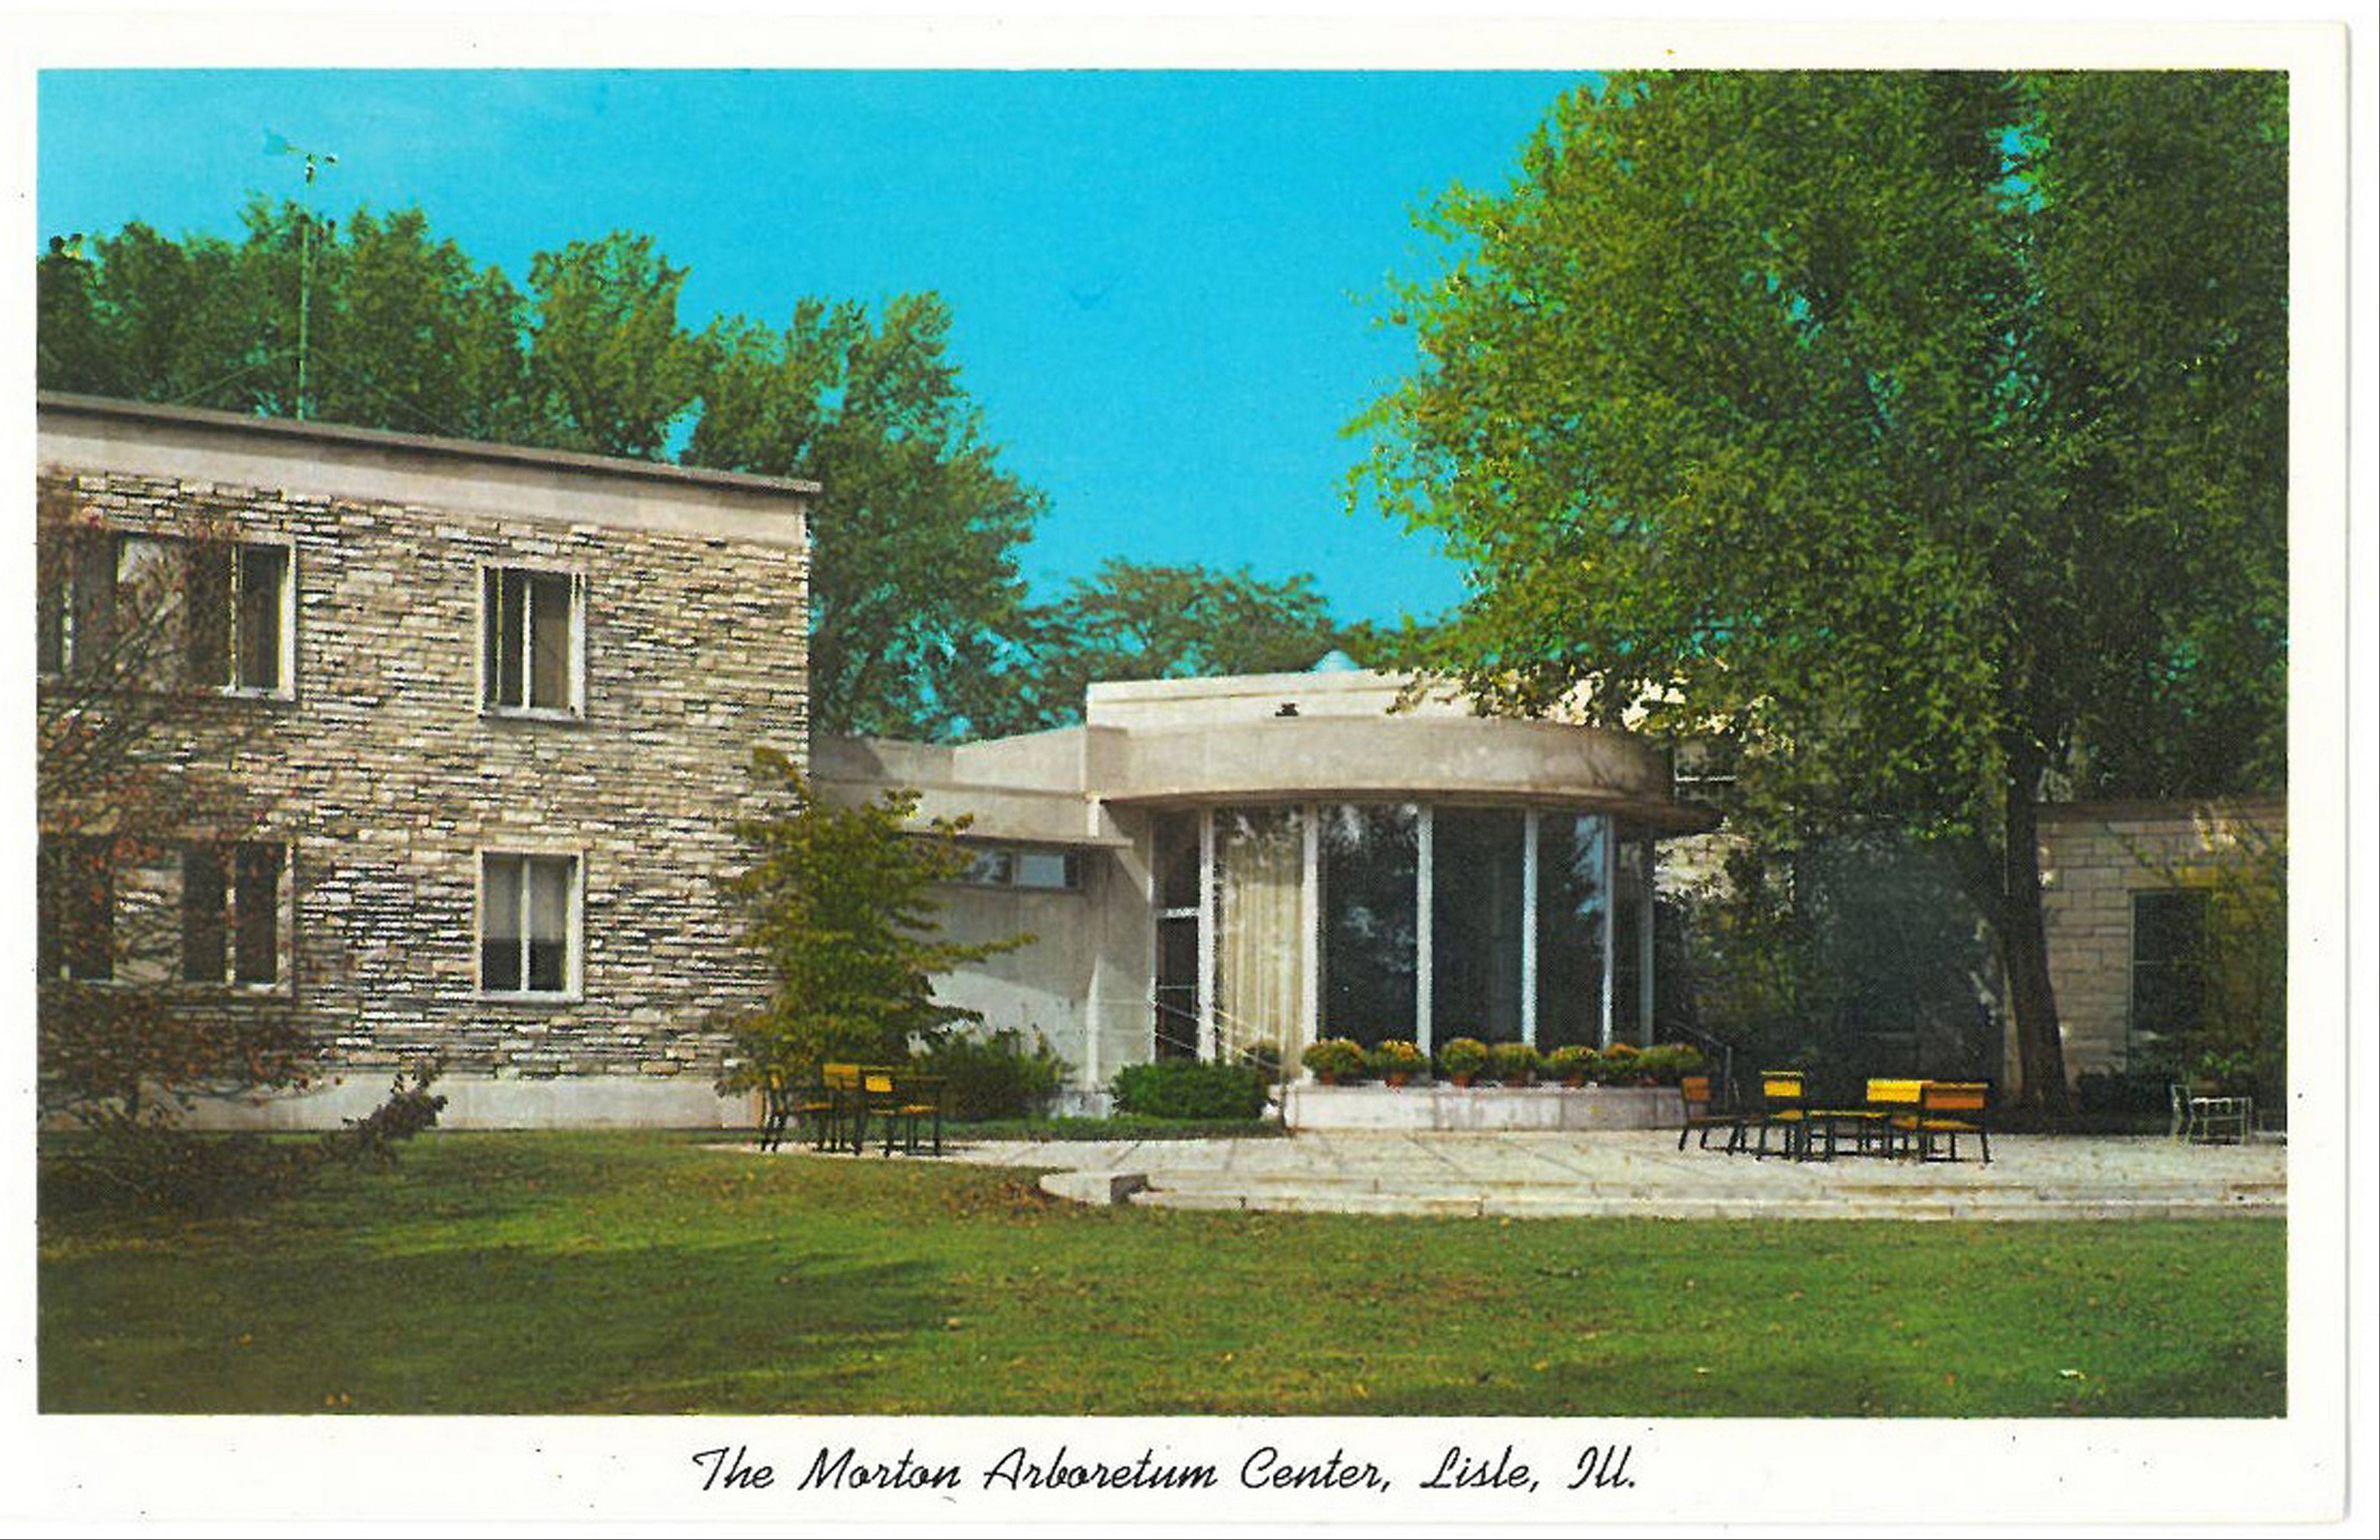 While images of nature on postcards from the Morton Arboretum may still look current, those with buildings and people hint at years gone by.